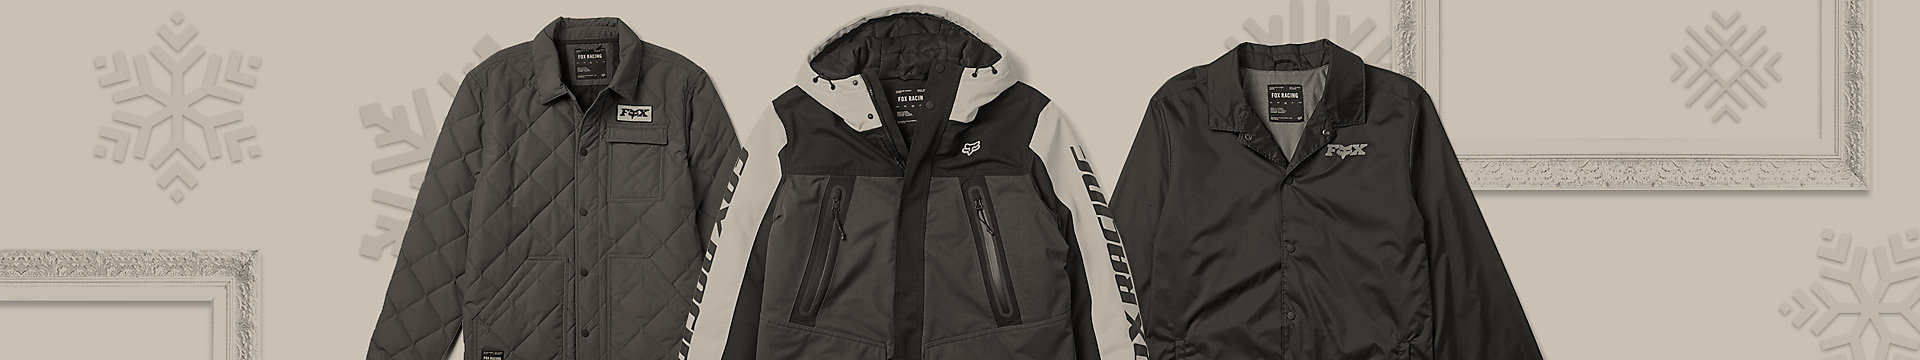 Fox Christmas Gift Guide - Jackets